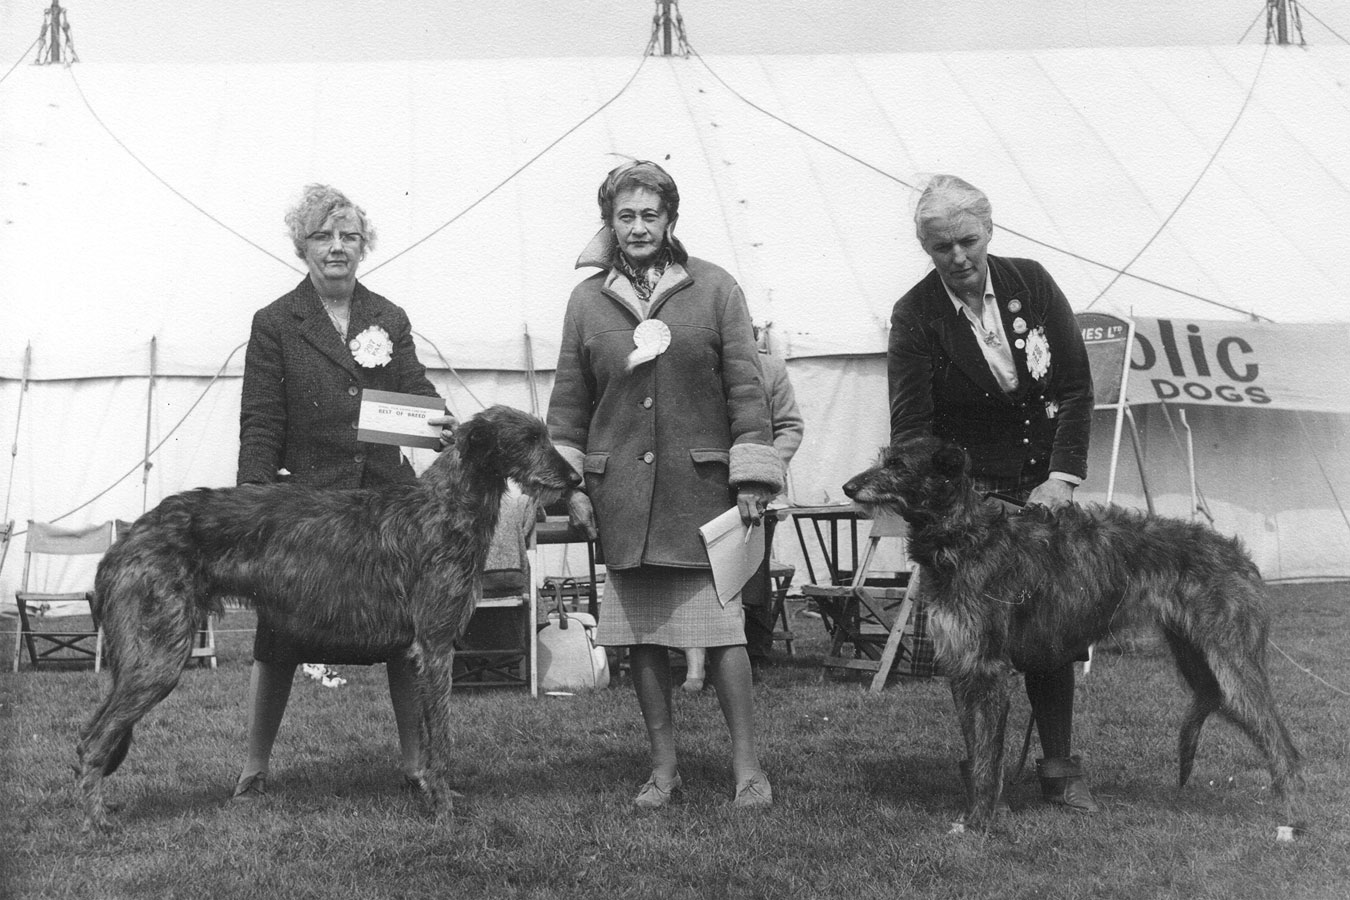 Bath Championship Show, 1965 Miss Hartley with Ch. Garry of Rotherwood (b. 1963 Gorm of Cockalorum x Churchwall's Fern), judge Mrs. Creasy, Miss Noble with Hughina of Ardkinglas (b. 1962 Ch. Fitzroy of Ardkinglas x Ch. Wilhelmina of Ardkinglas